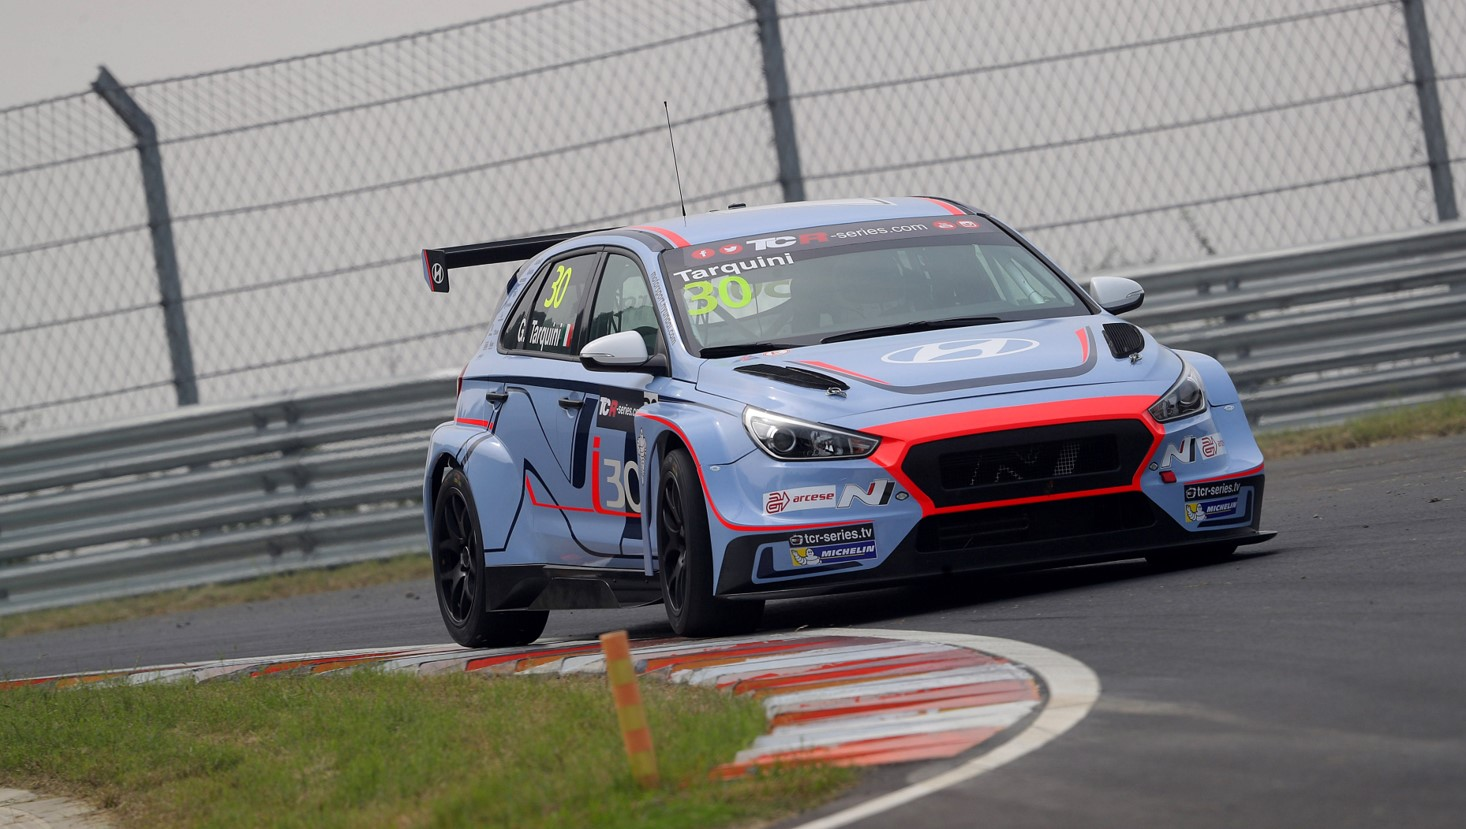 Hyundai i30 N TCR impressiona no seu evento de estreia no TCR International Series